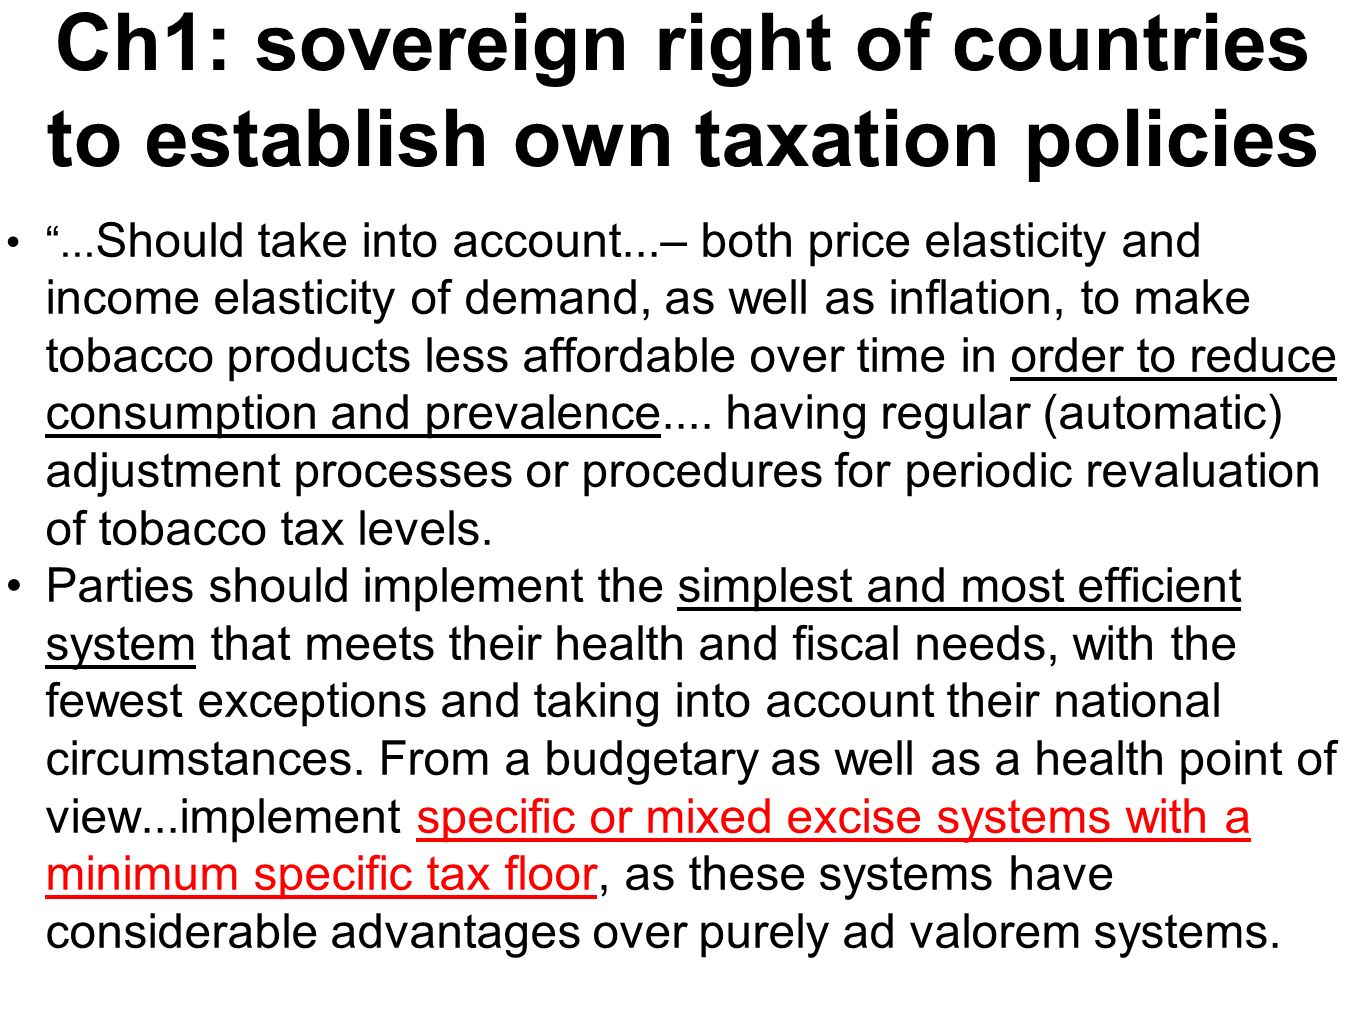 Ch1: sovereign right of countries to establish own taxation policies